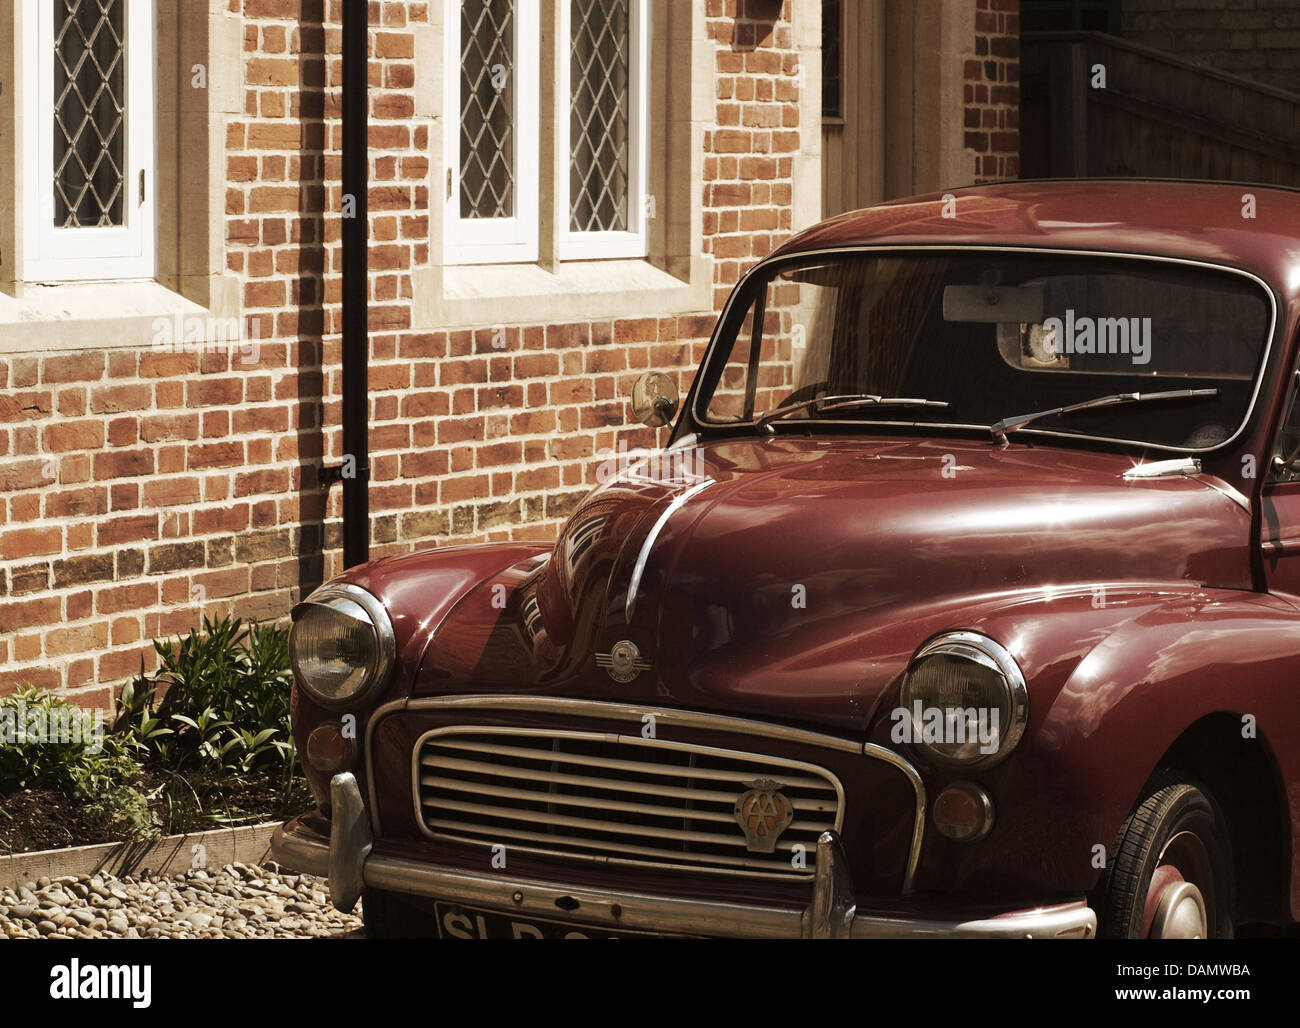 Vintage car, British, in muted tones - Stock Image